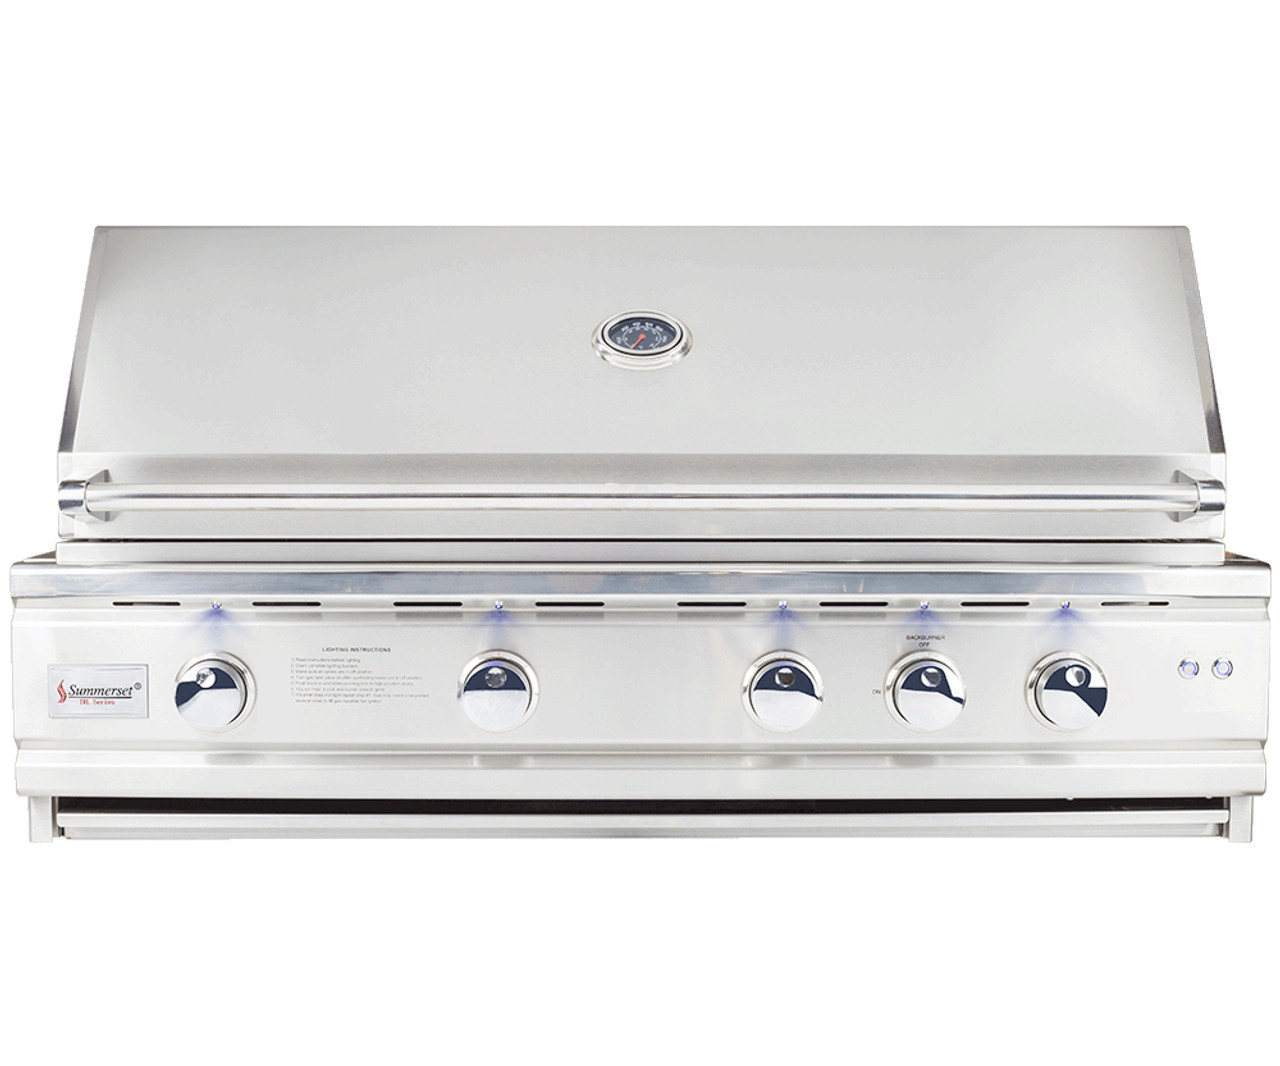 """The Deluxe 44"""" Includes various upgrades that can only be found on this model, such as cast stainless steel burners, ceramic briquettes, zone separators, and thick 9mm cooking grates, don't miss out on the TLD44"""